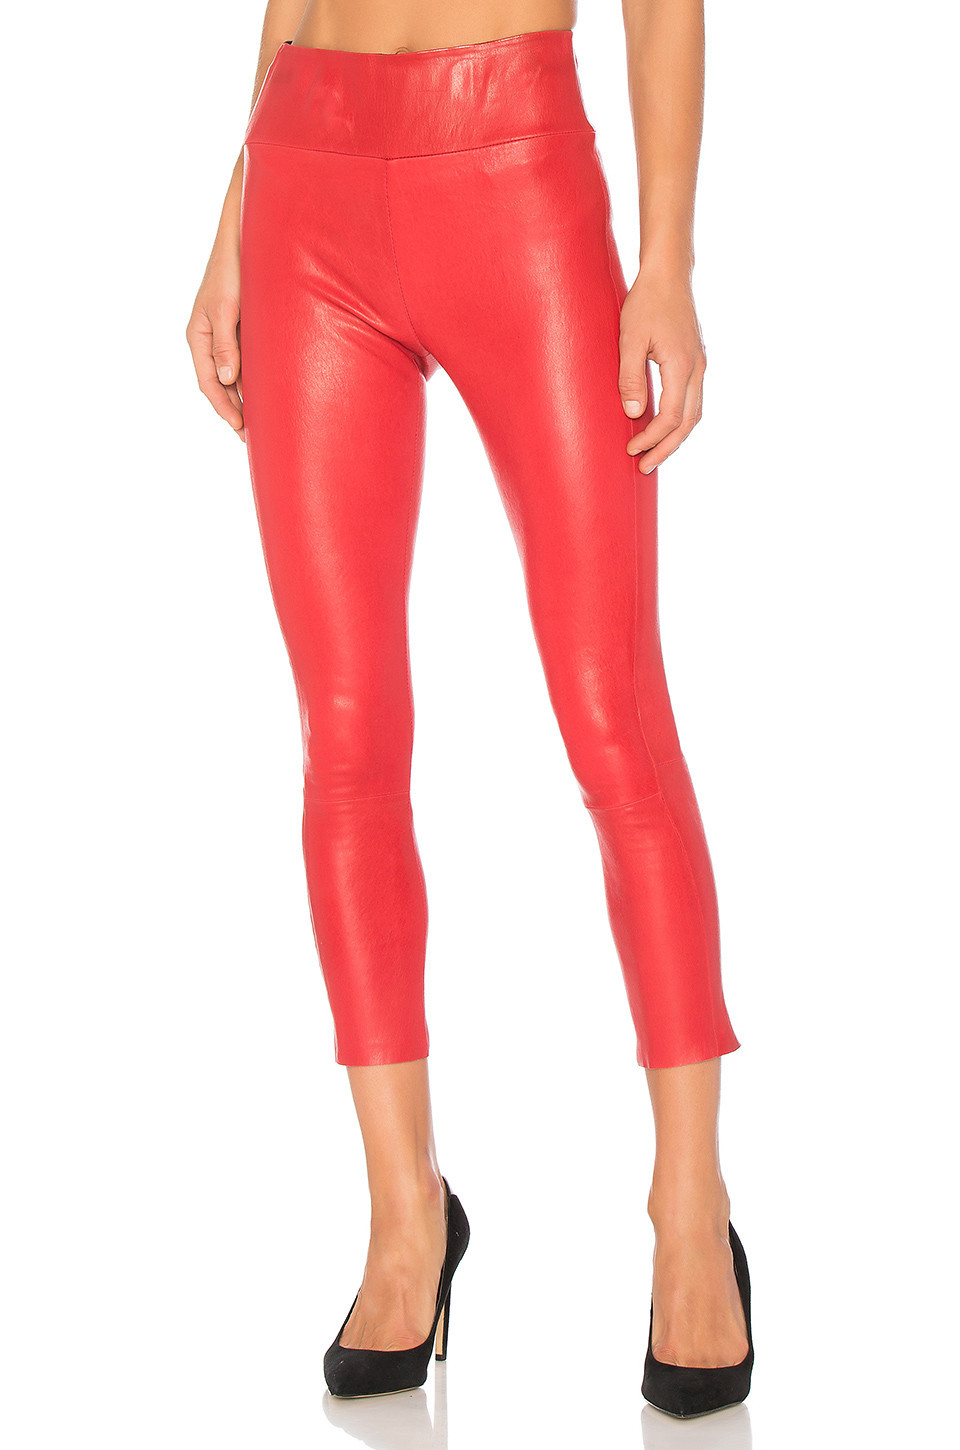 SPRWMN High Waist 3/4 Legging in red